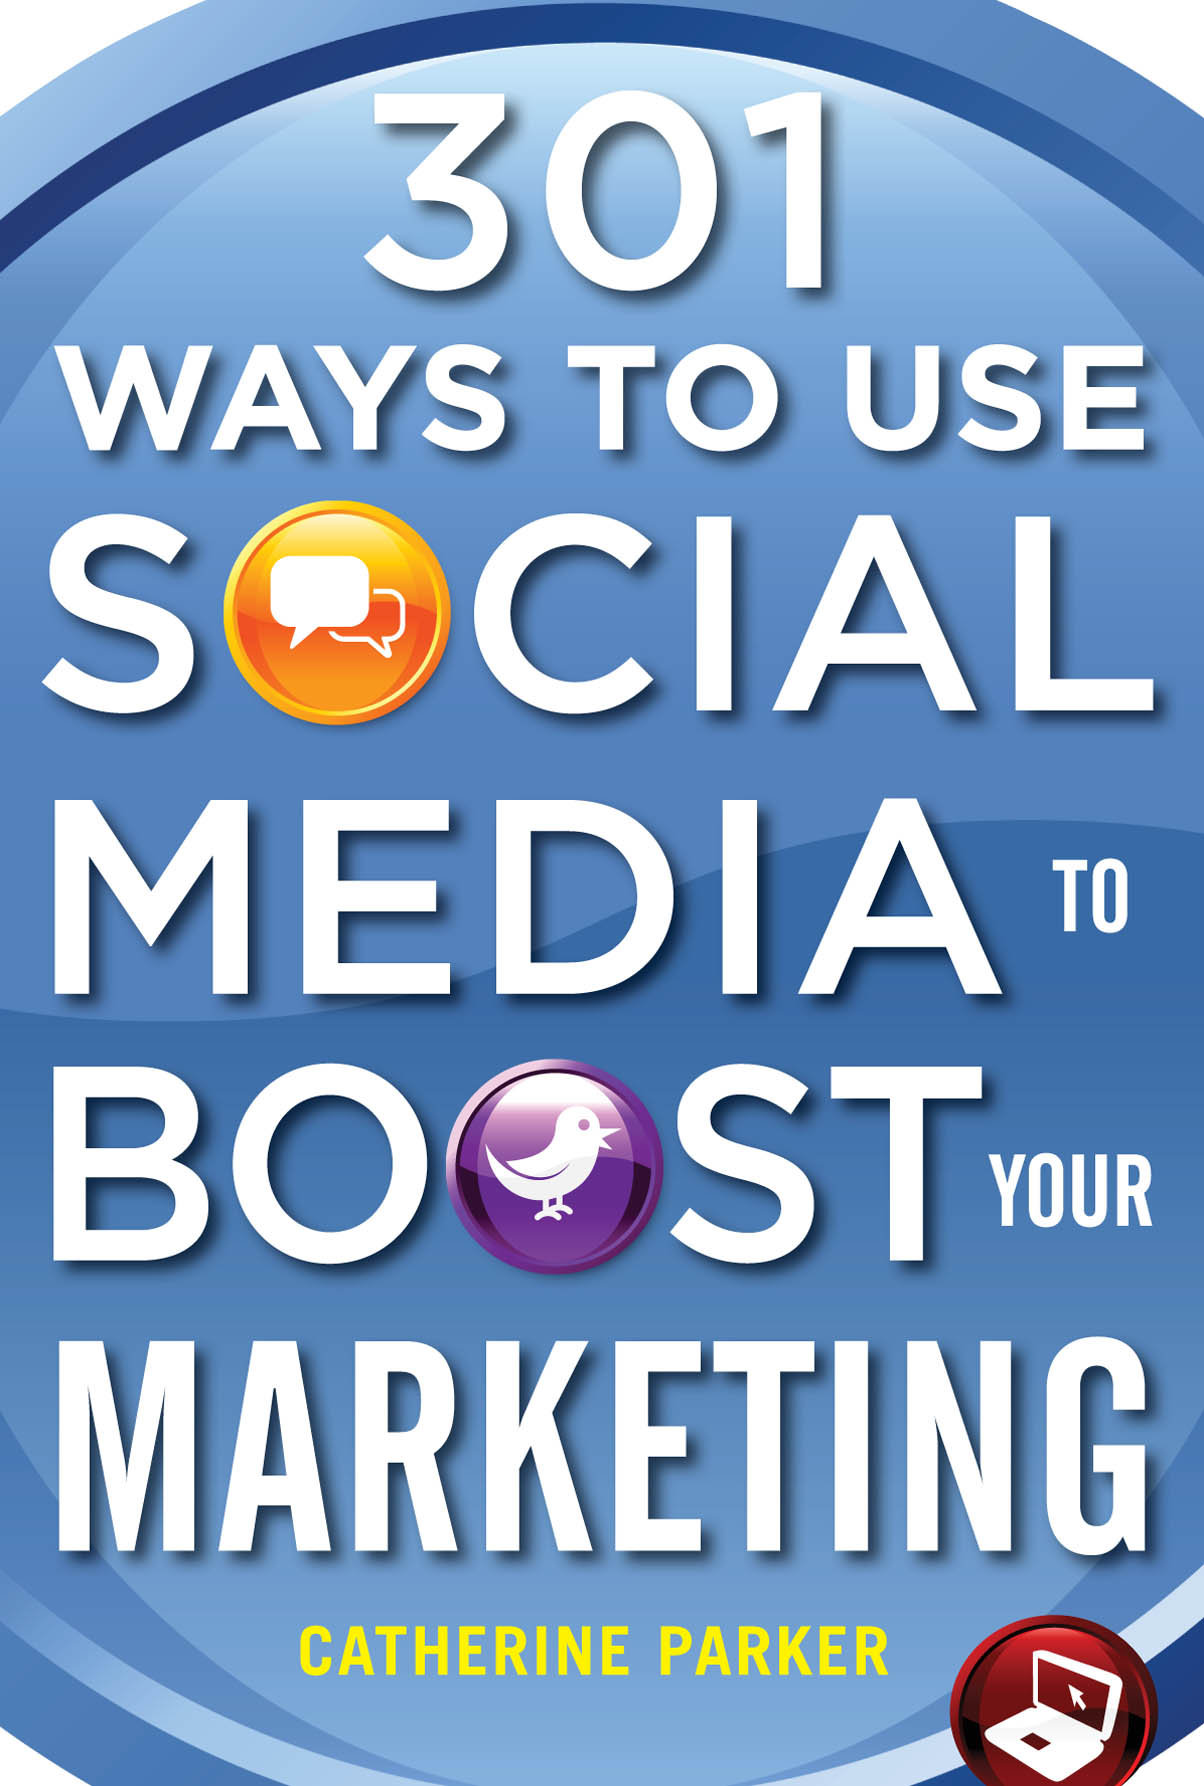 Download Ebook 301 Ways to Use Social Media To Boost Your Marketing by Catherine Parker Pdf